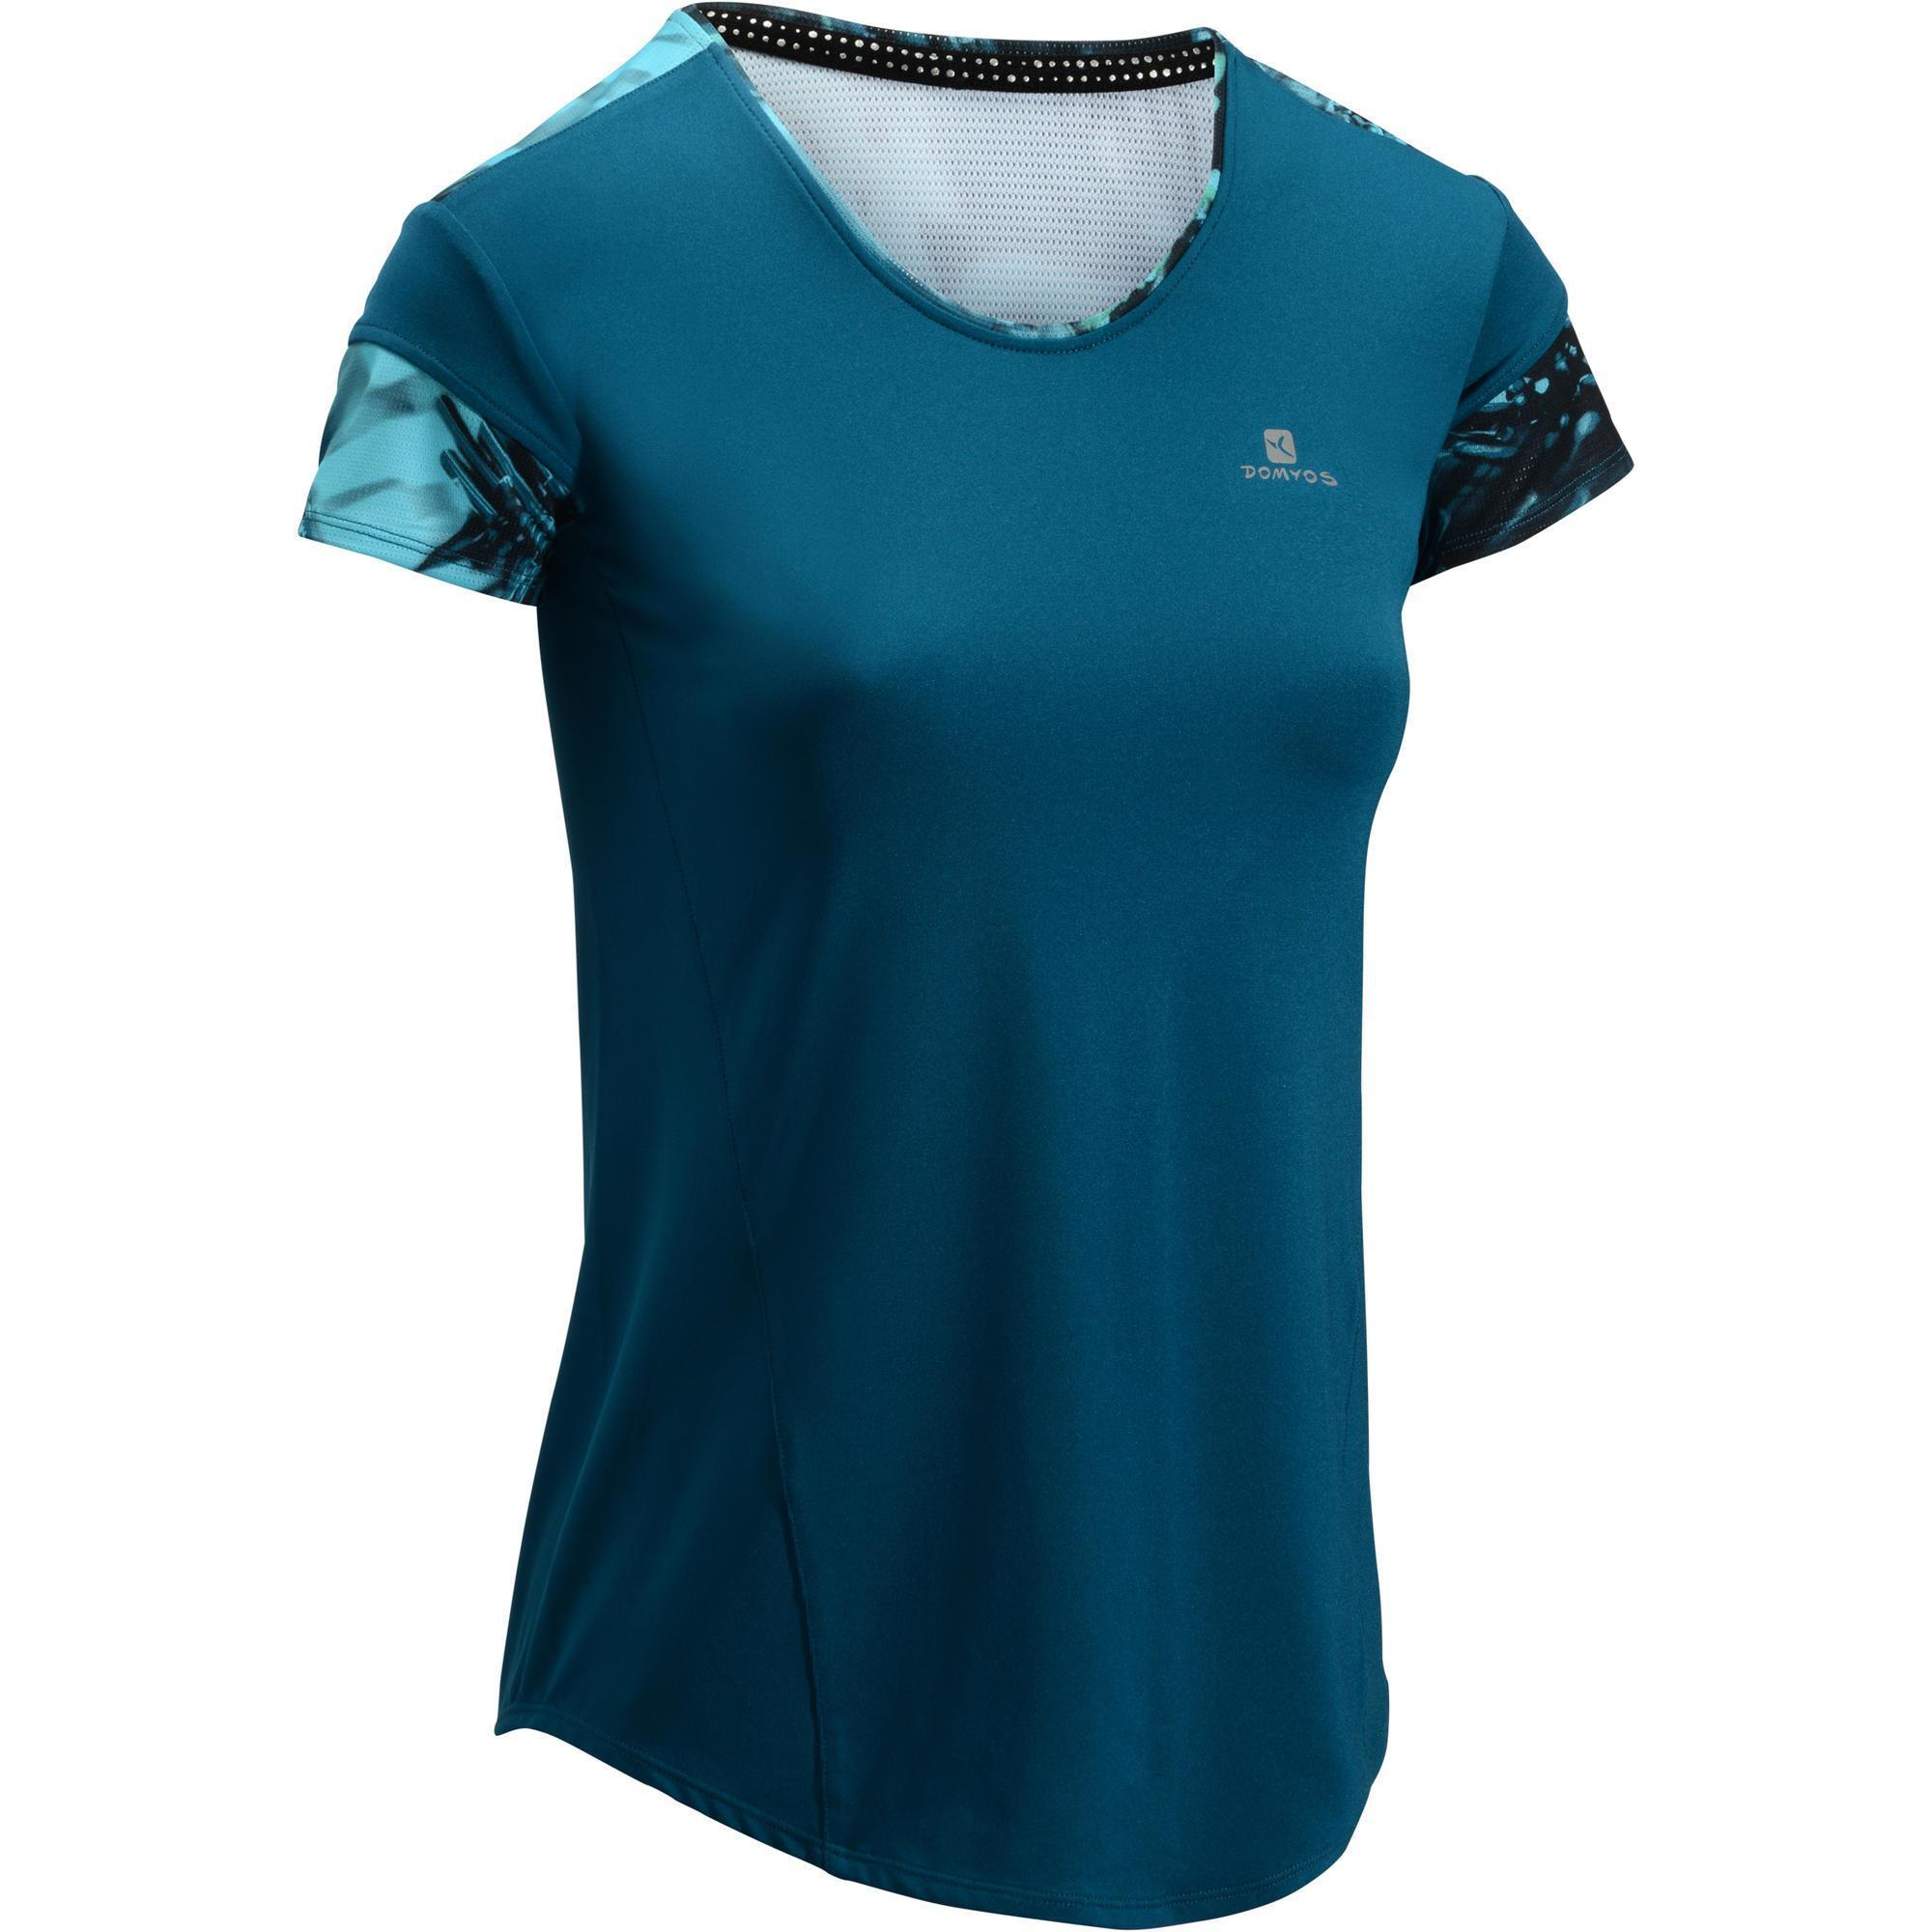 t shirt fitness cardio femme bleu 500 domyos domyos by decathlon. Black Bedroom Furniture Sets. Home Design Ideas